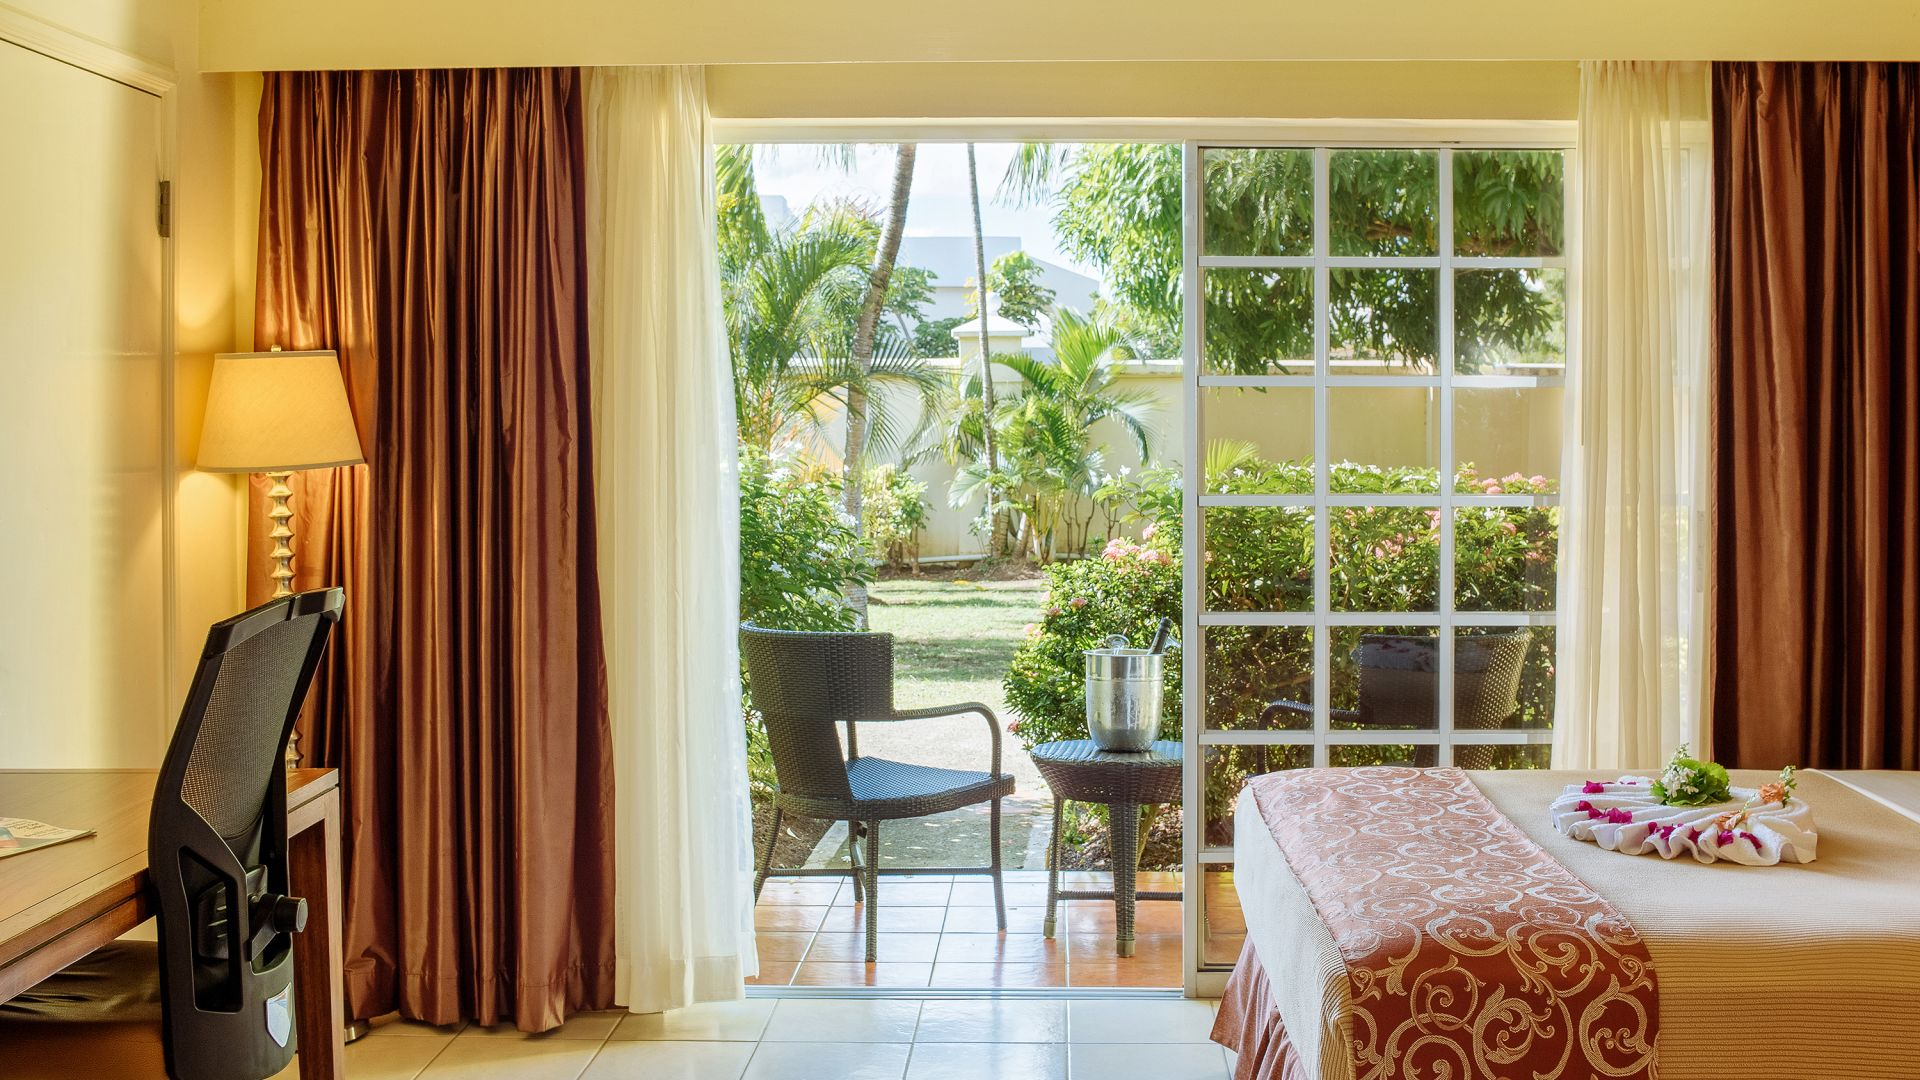 Affordable Hotel Rooms in St. Lucia | Bay Gardens Hotel